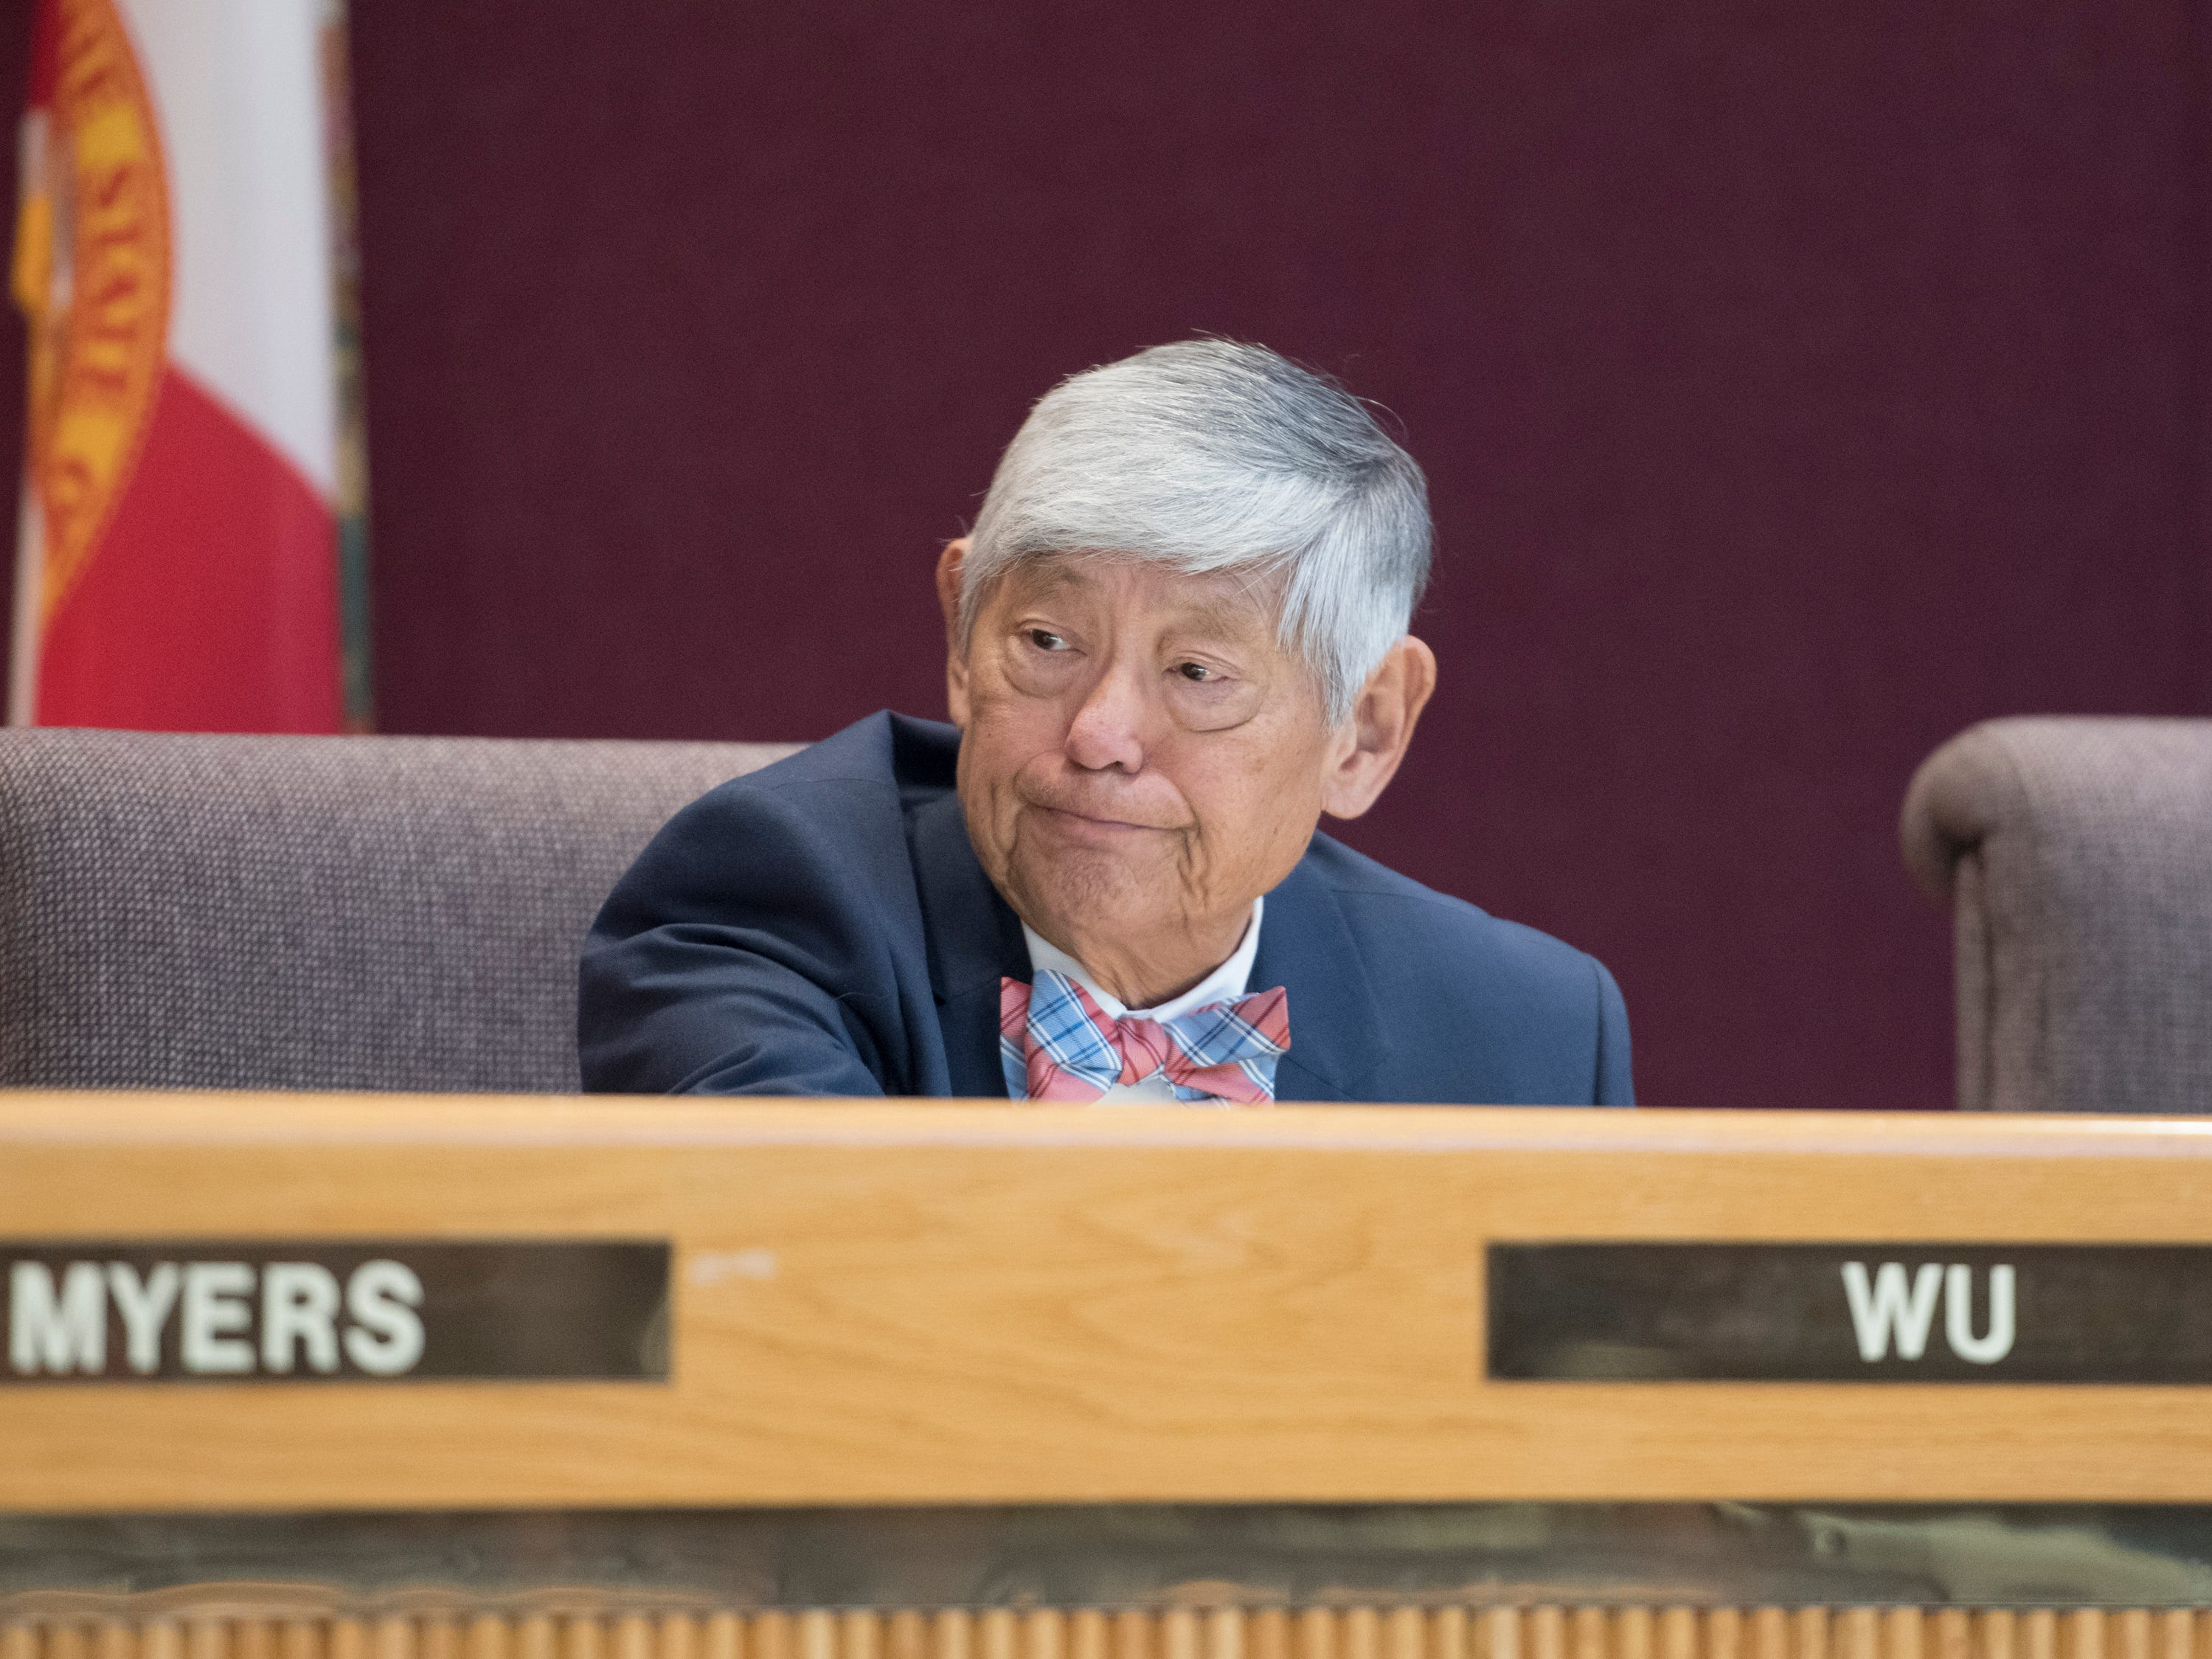 Council member P.C. Wu listens during the Pensacola City Council and Mayor installation ceremony at City Hall in Pensacola on Tuesday, November 27, 2018.